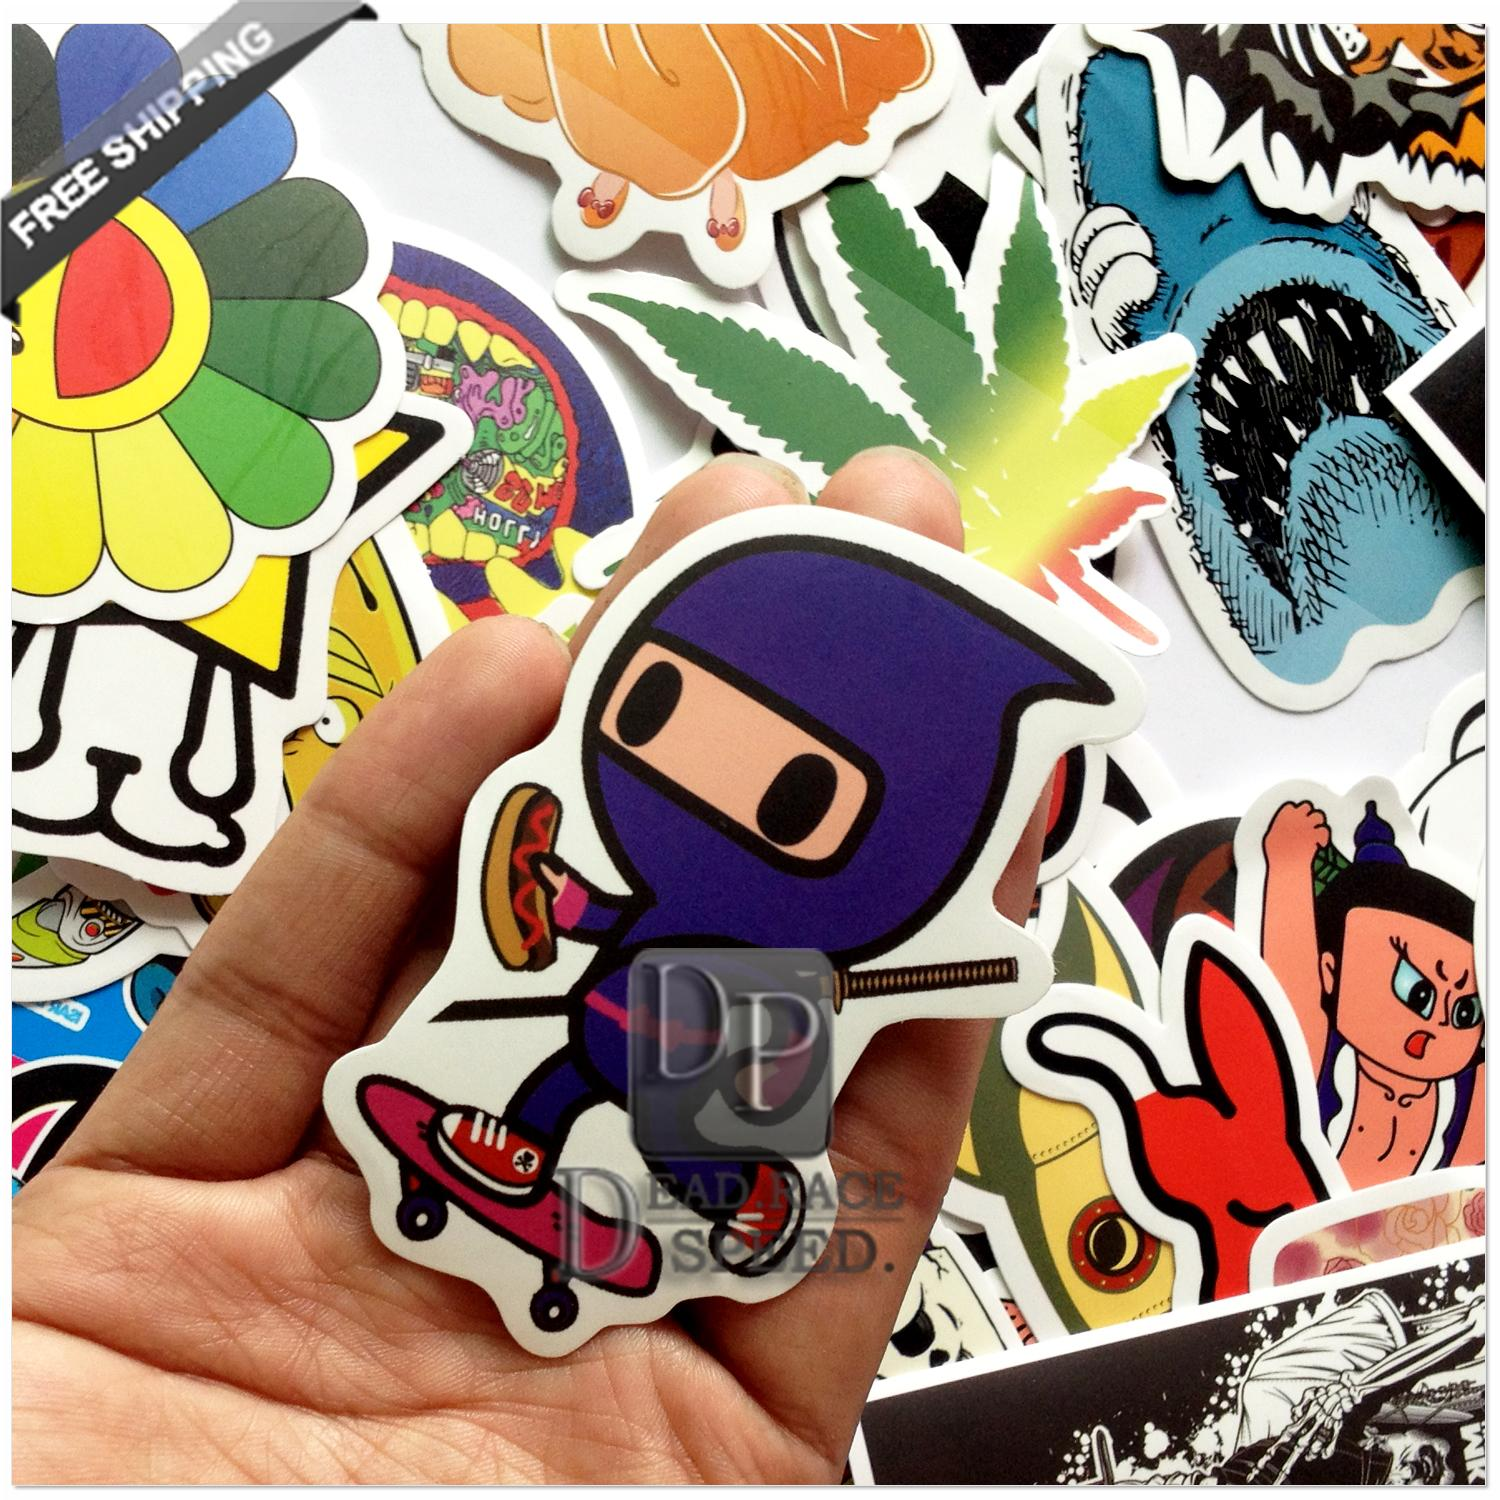 Sticker design for car online - Drop Shipping Stickers Car Styling Funny Car Sticker Doodle Motorcycle Bike Travel Doodle Accessory Cover Decals